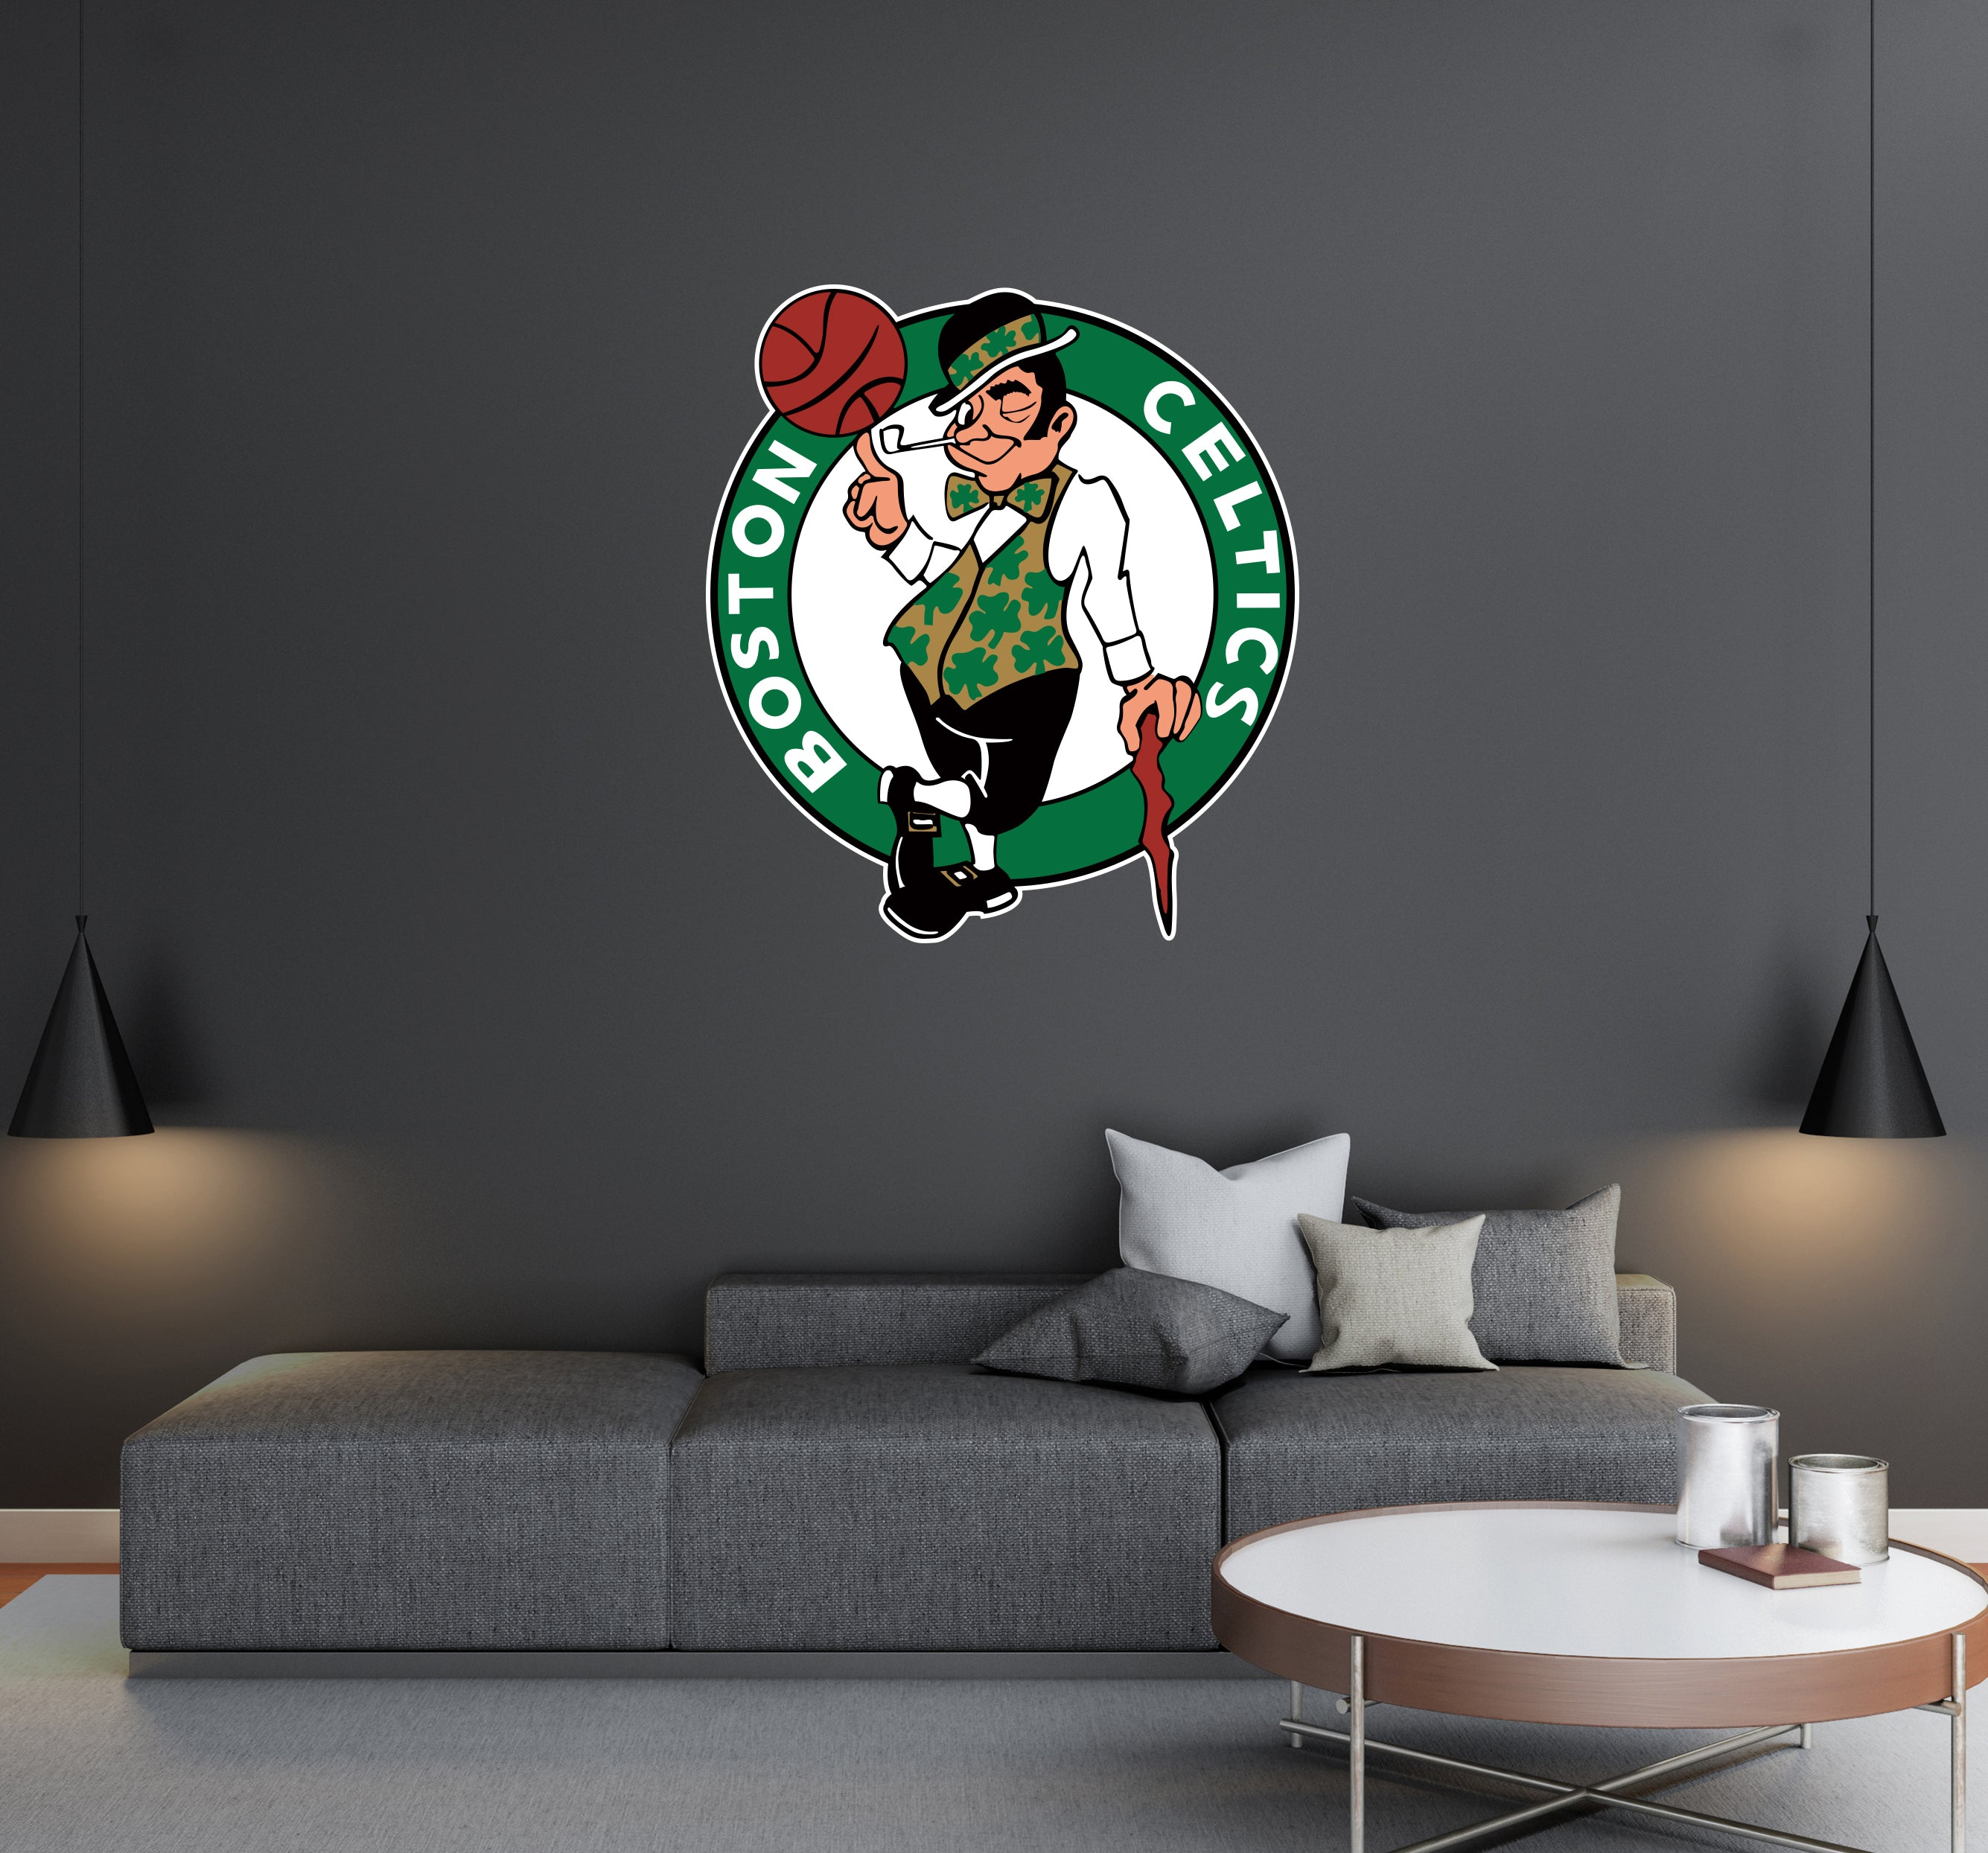 Boston Celtics - NBA Basketball Team Logo - Wall Decal Removable & Reusable For Home Bedroom